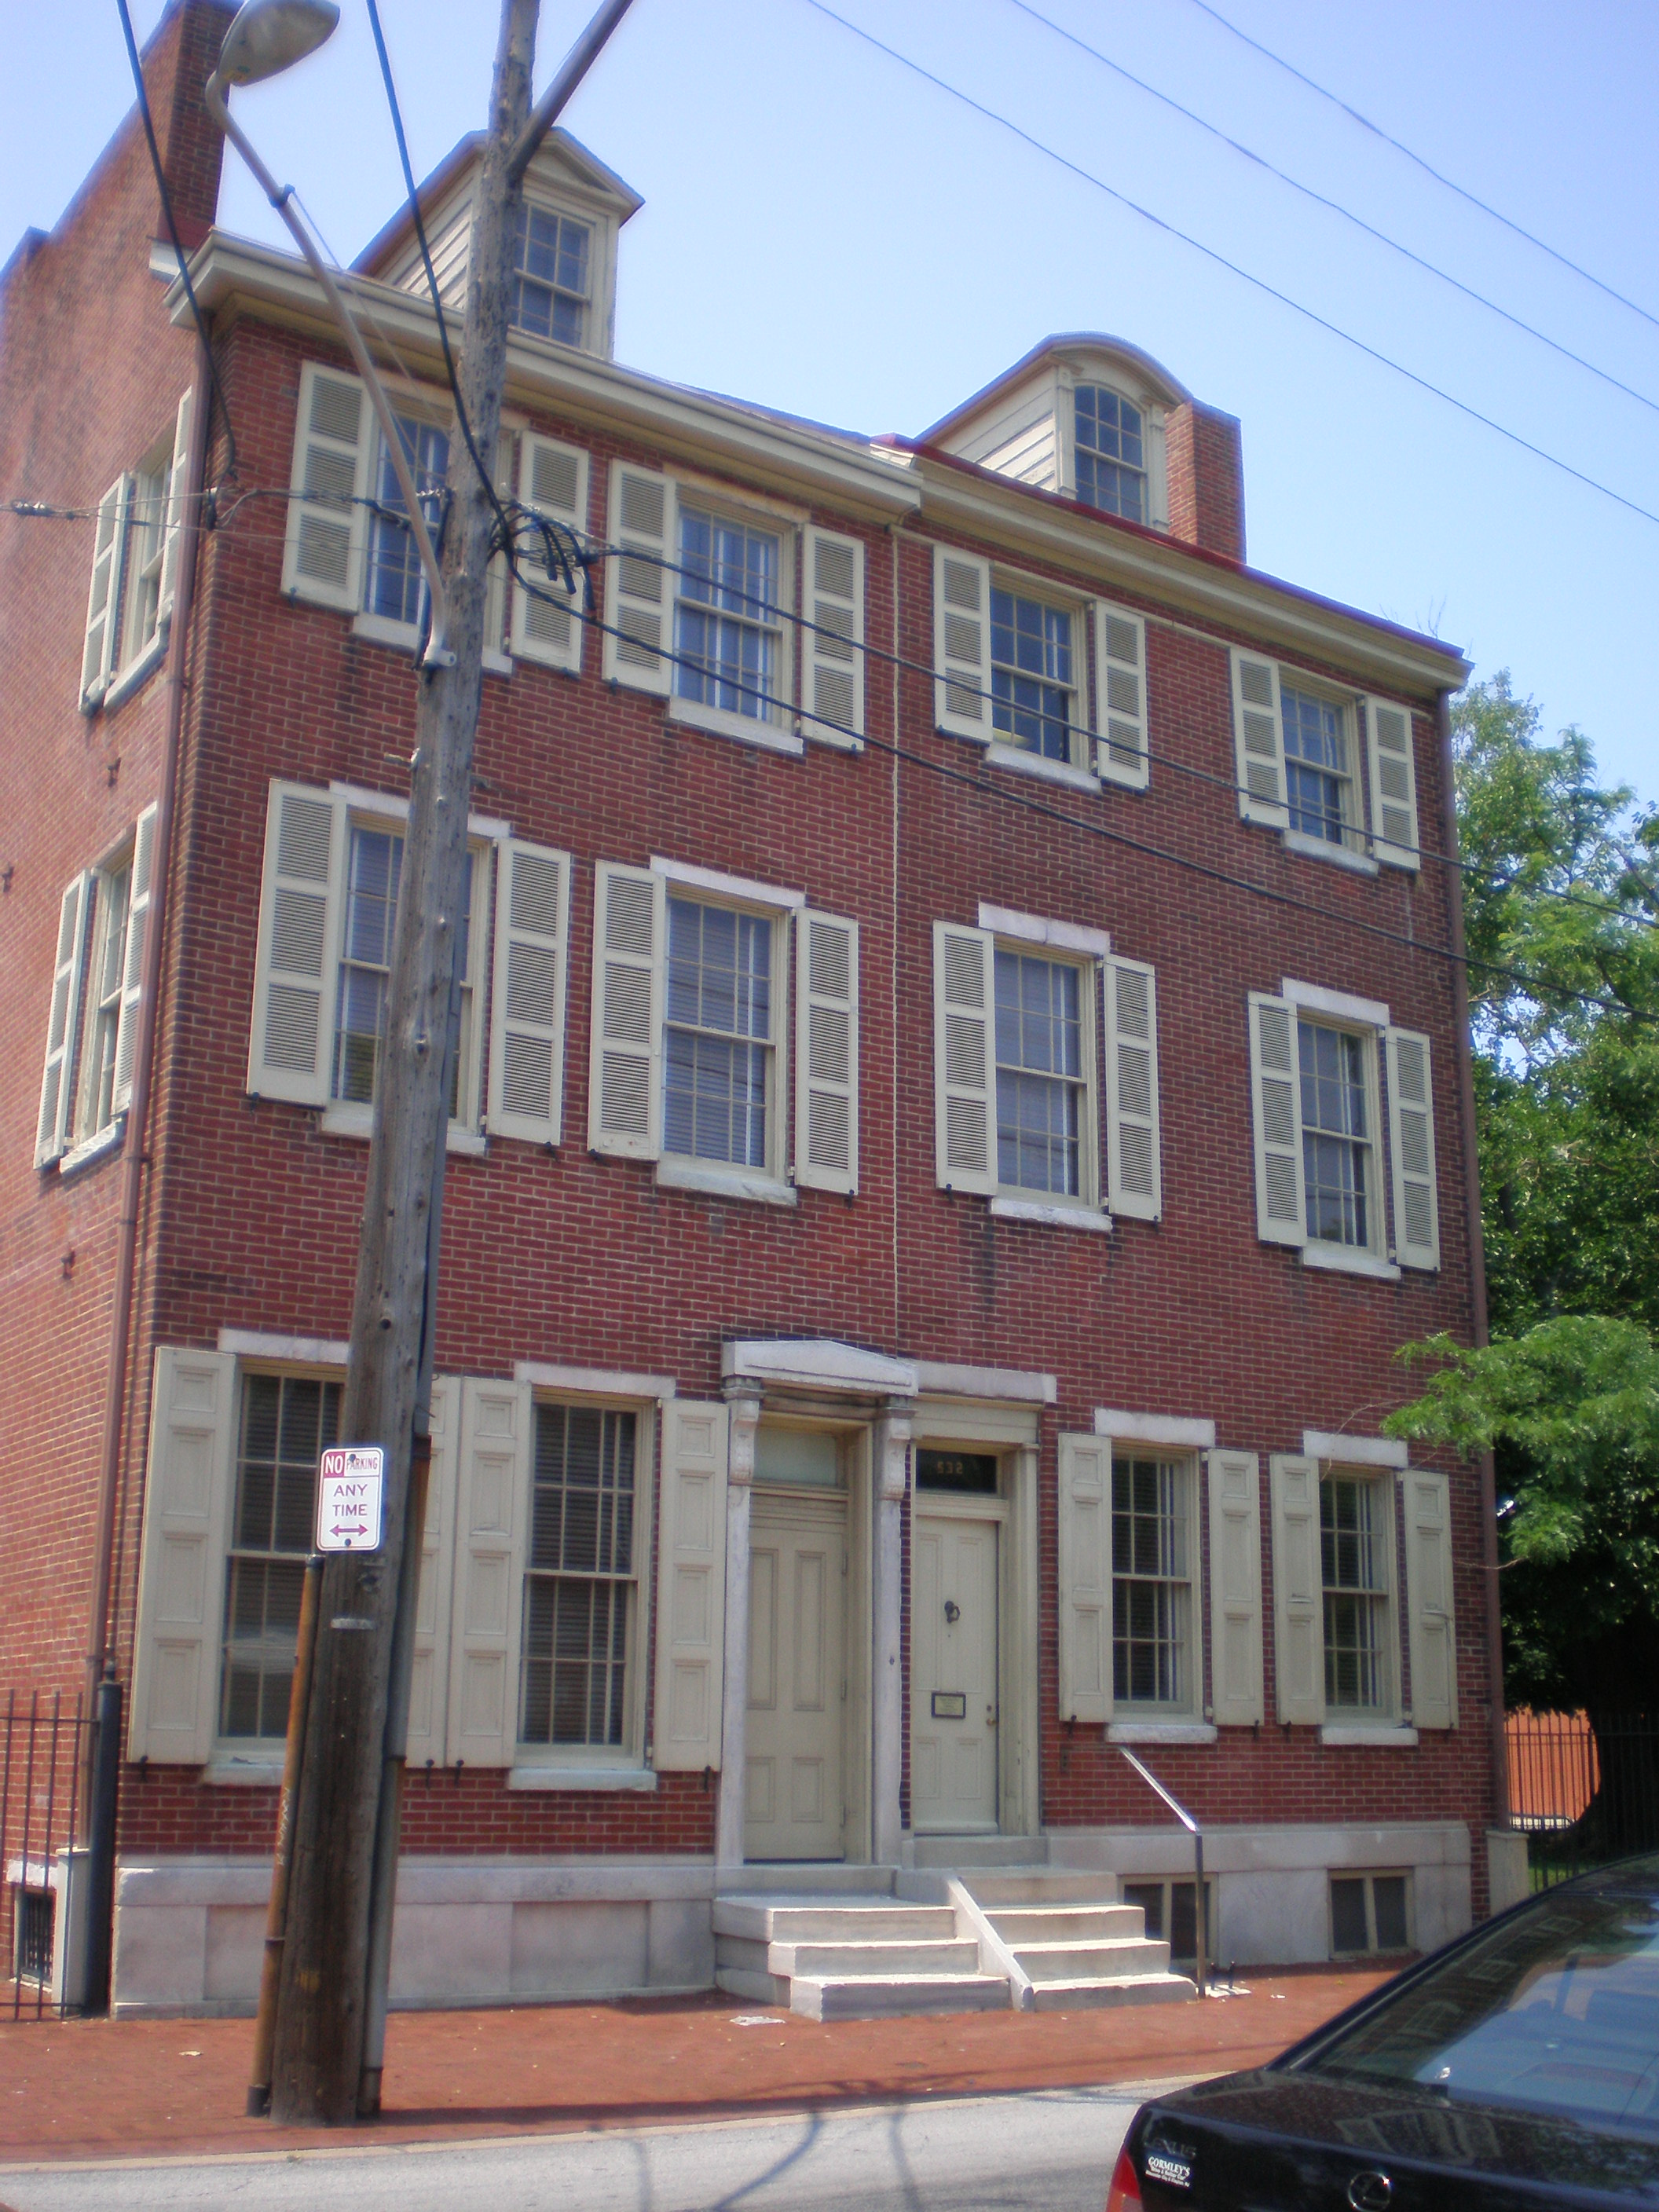 The Edgar Allan Poe National Historic Site in Philadelphia is one of several preserved former residences of Poe. Photo taken by <a href=